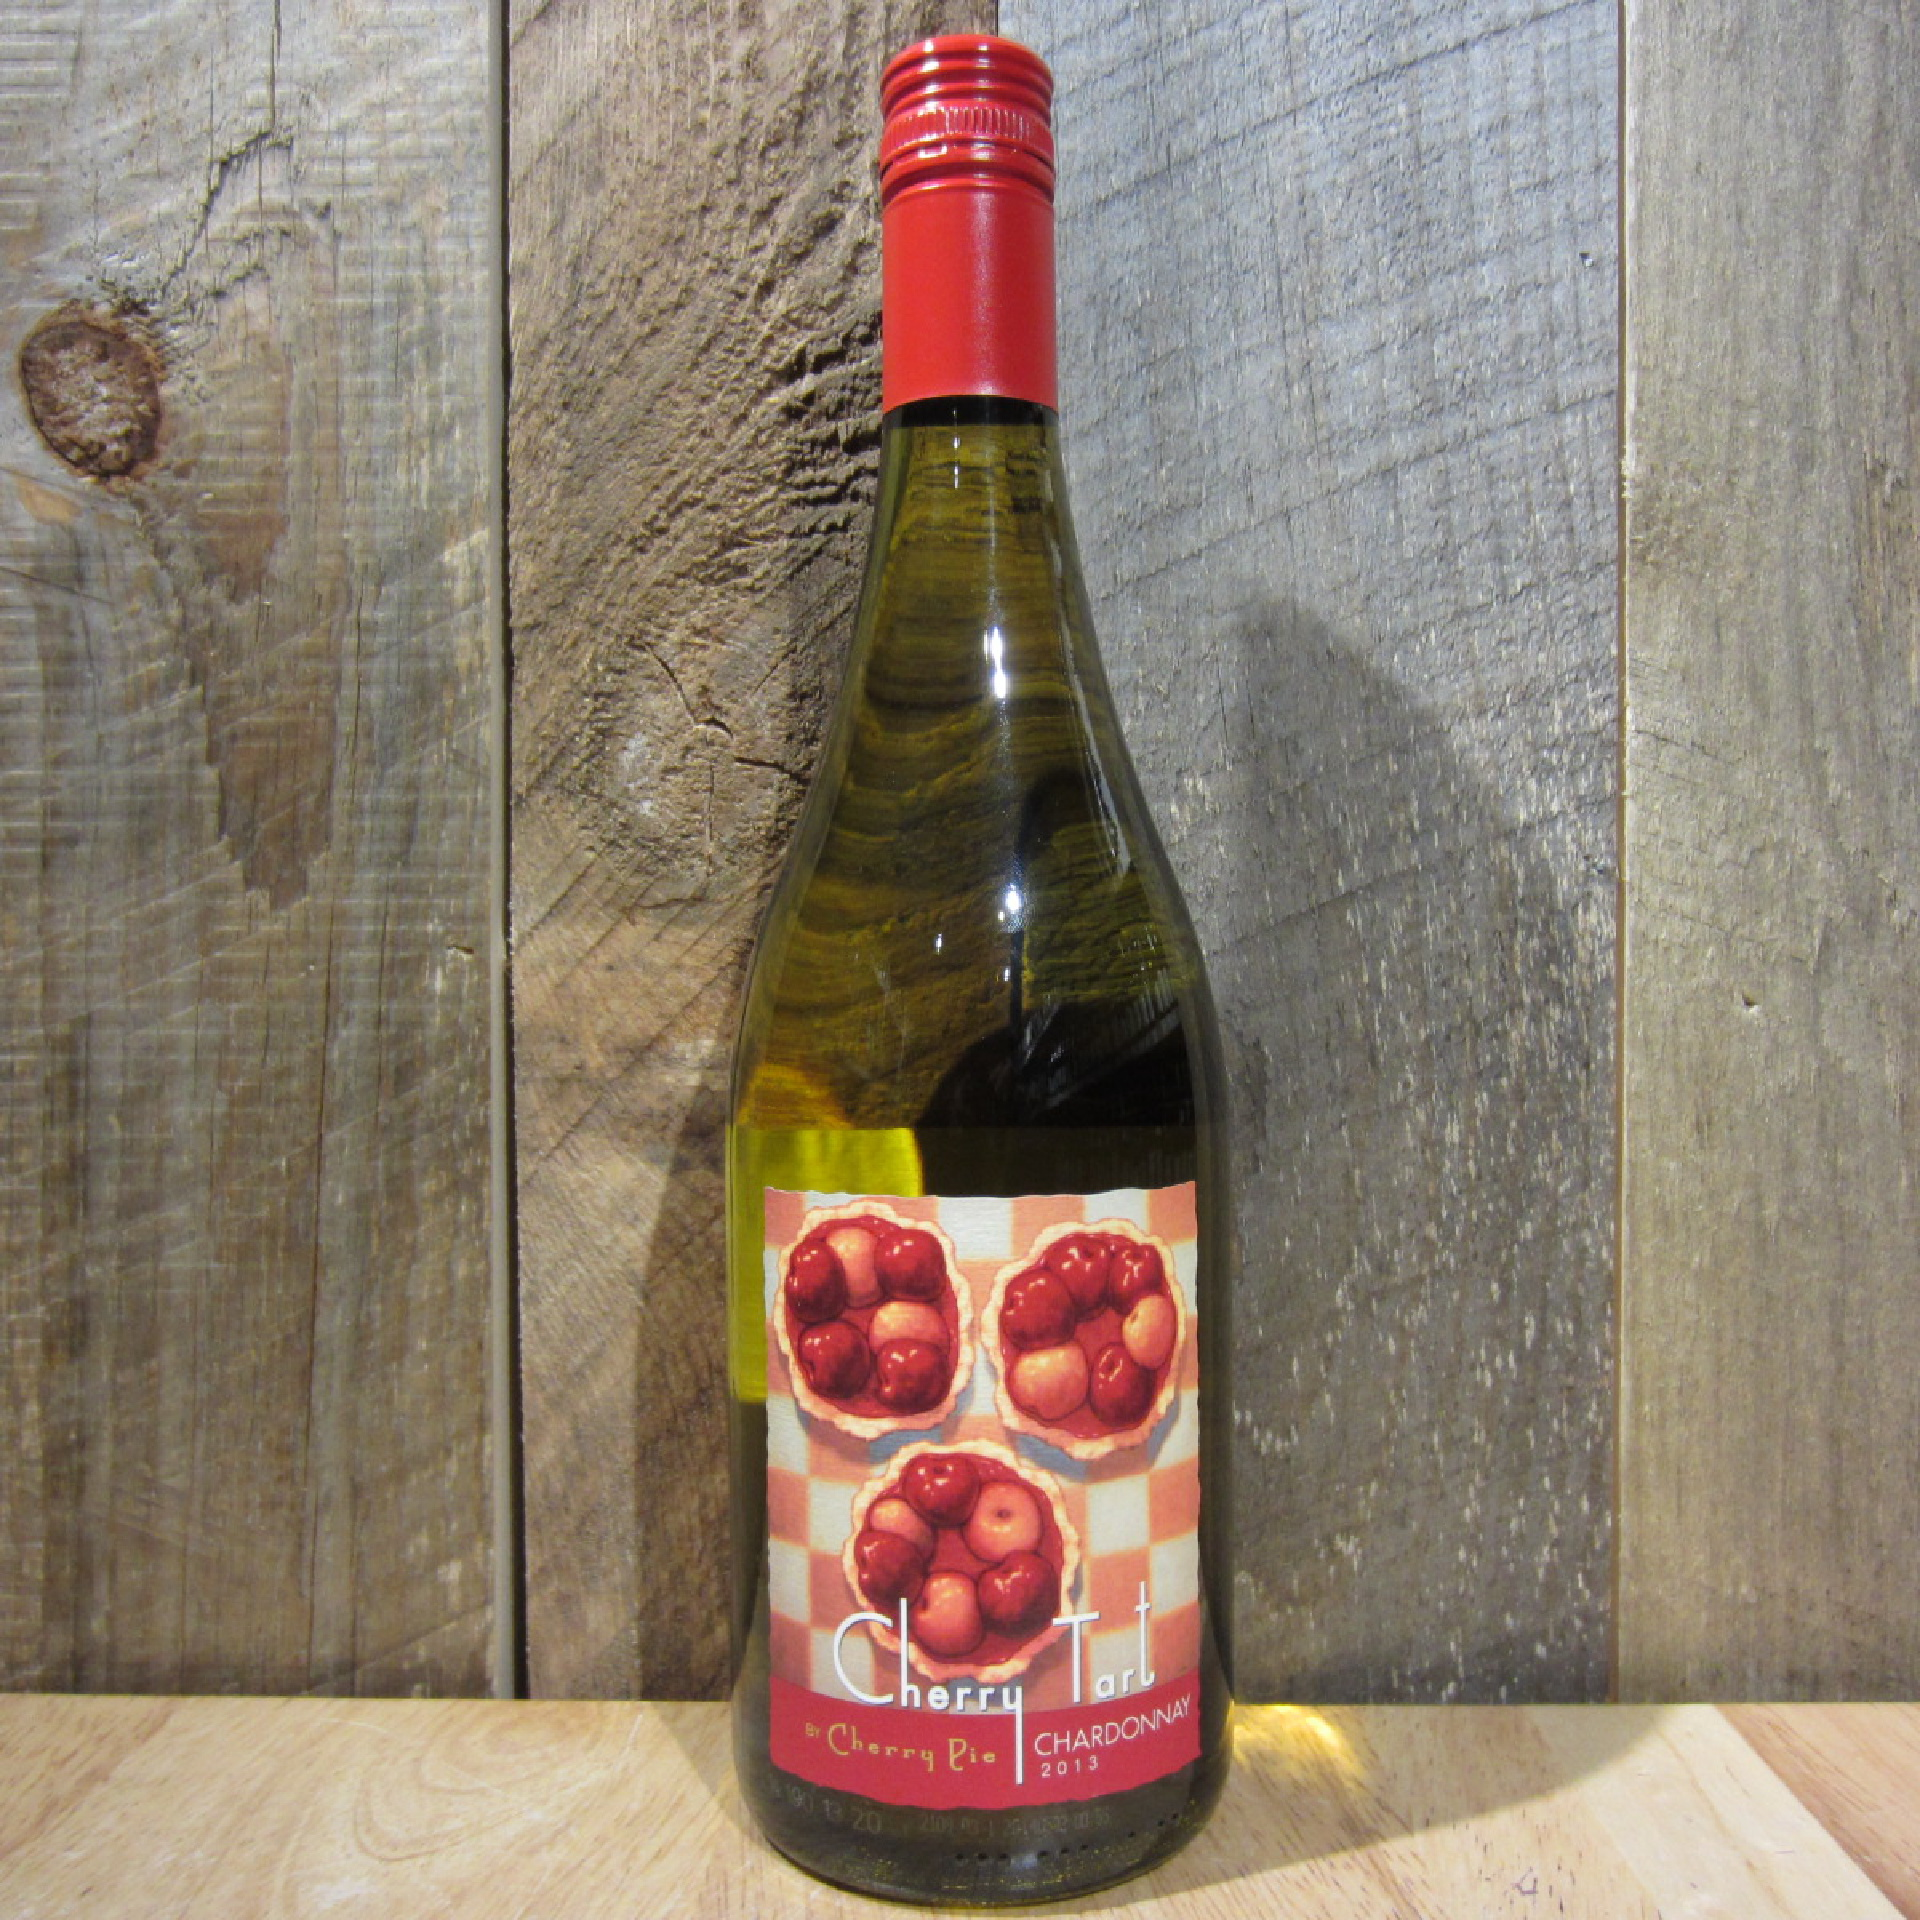 http://www.addressrealestate.com/media/images/blogs/25/2/b_cherry-tart-chardonnay-750ml.jpg